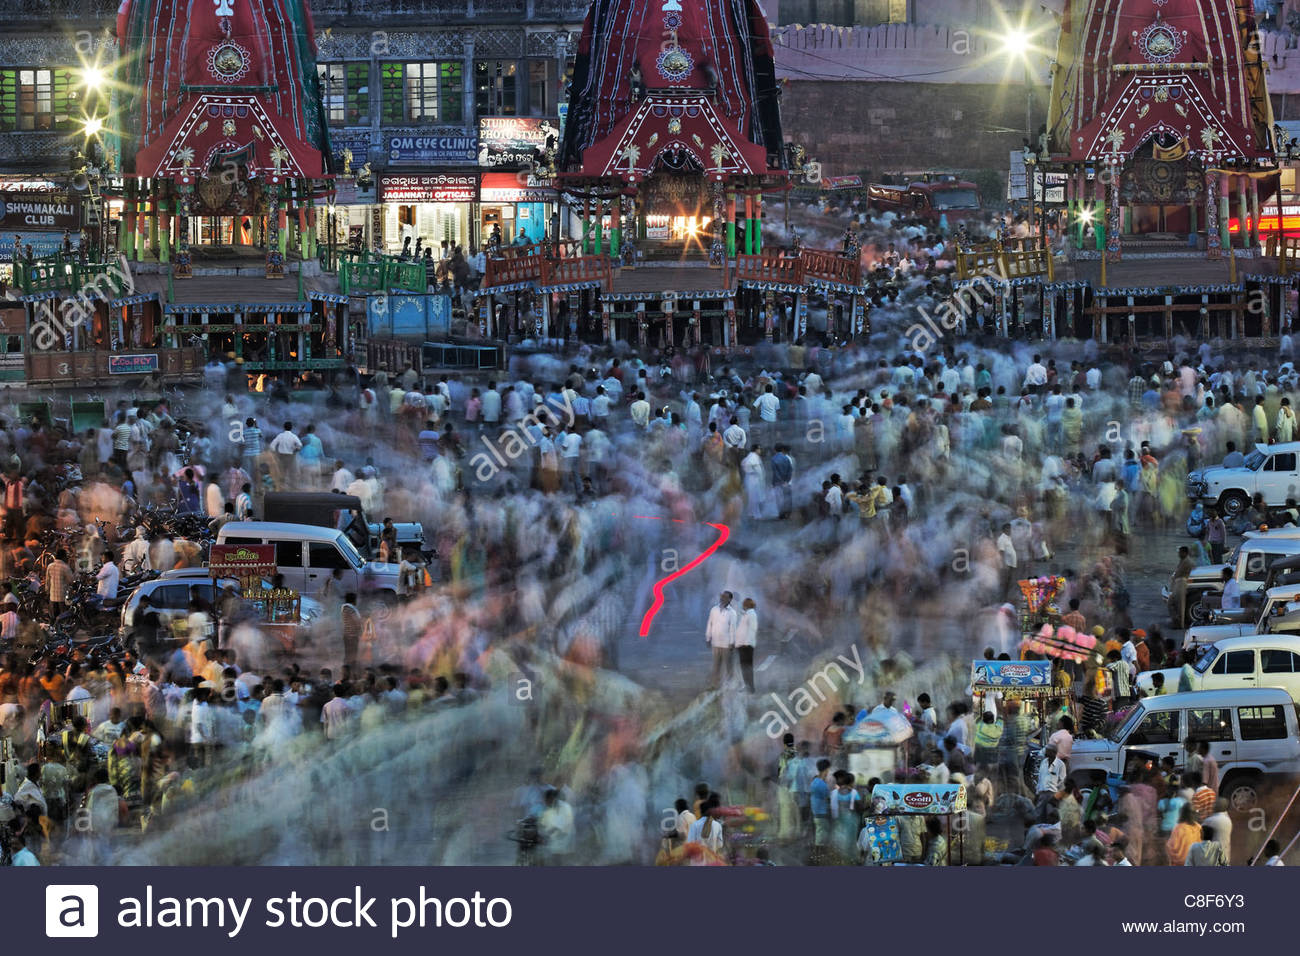 A Ratha Yatra religious festival in temple town of Puri. Stock Photo